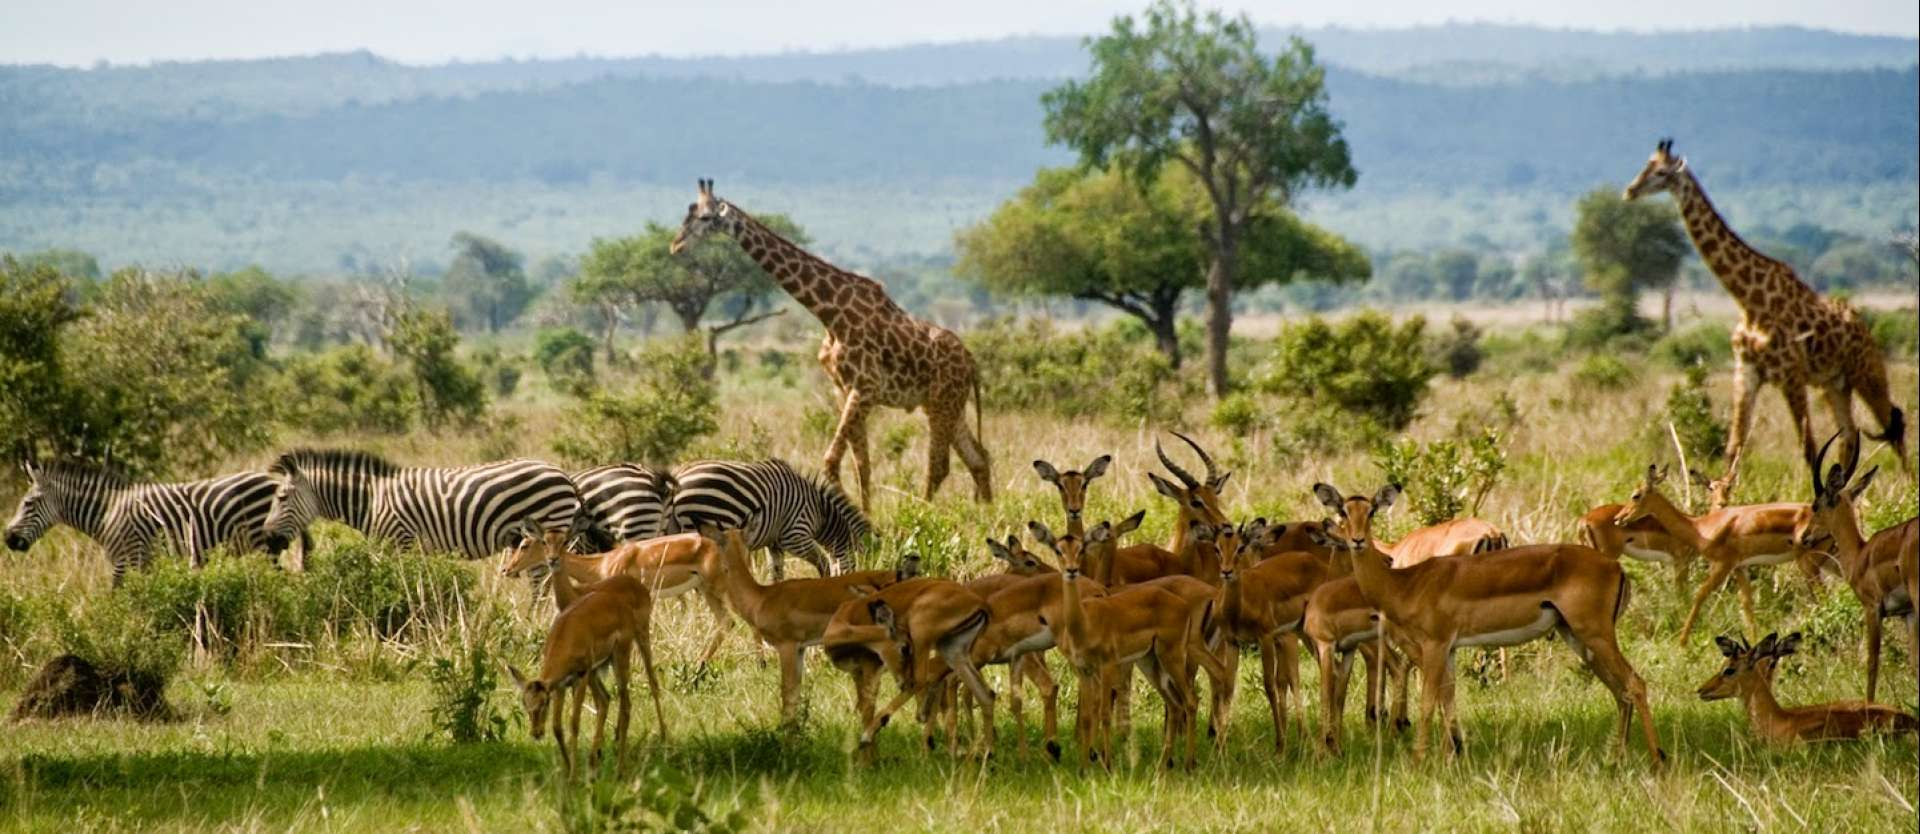 Ruaha is a special place to visit for many reasons